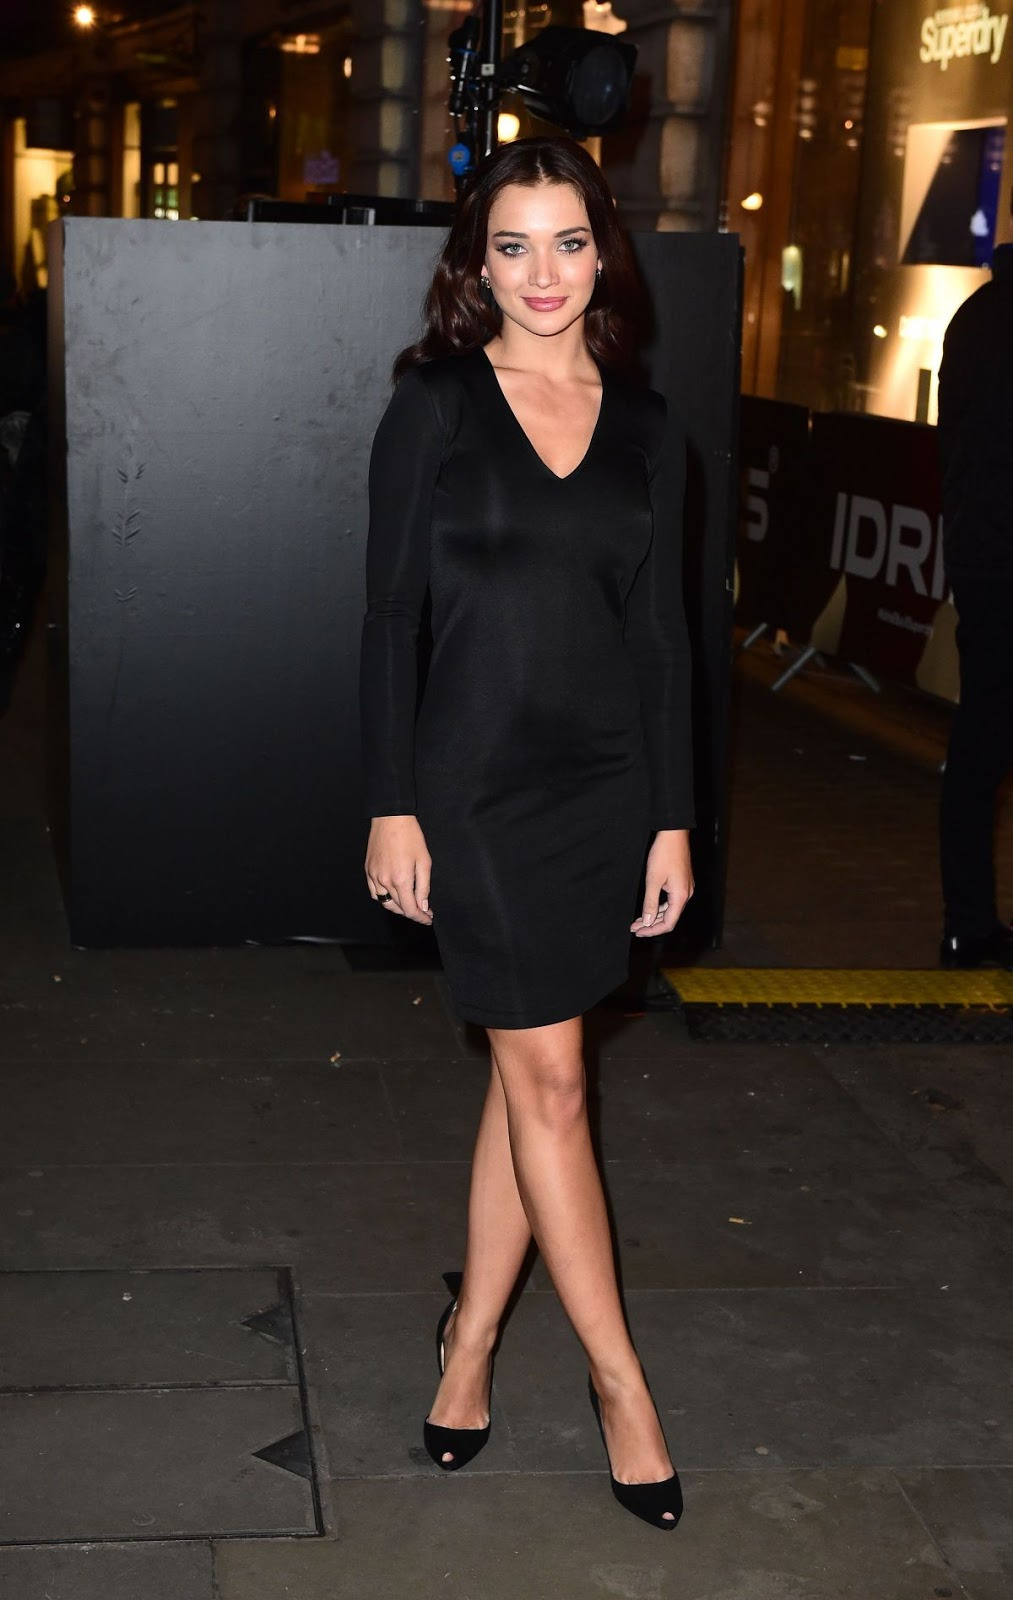 2.0 film actress HQ Wallpapers of Amy Jackson in black mini dress at Idris Elba Superdry Collection Launch In London